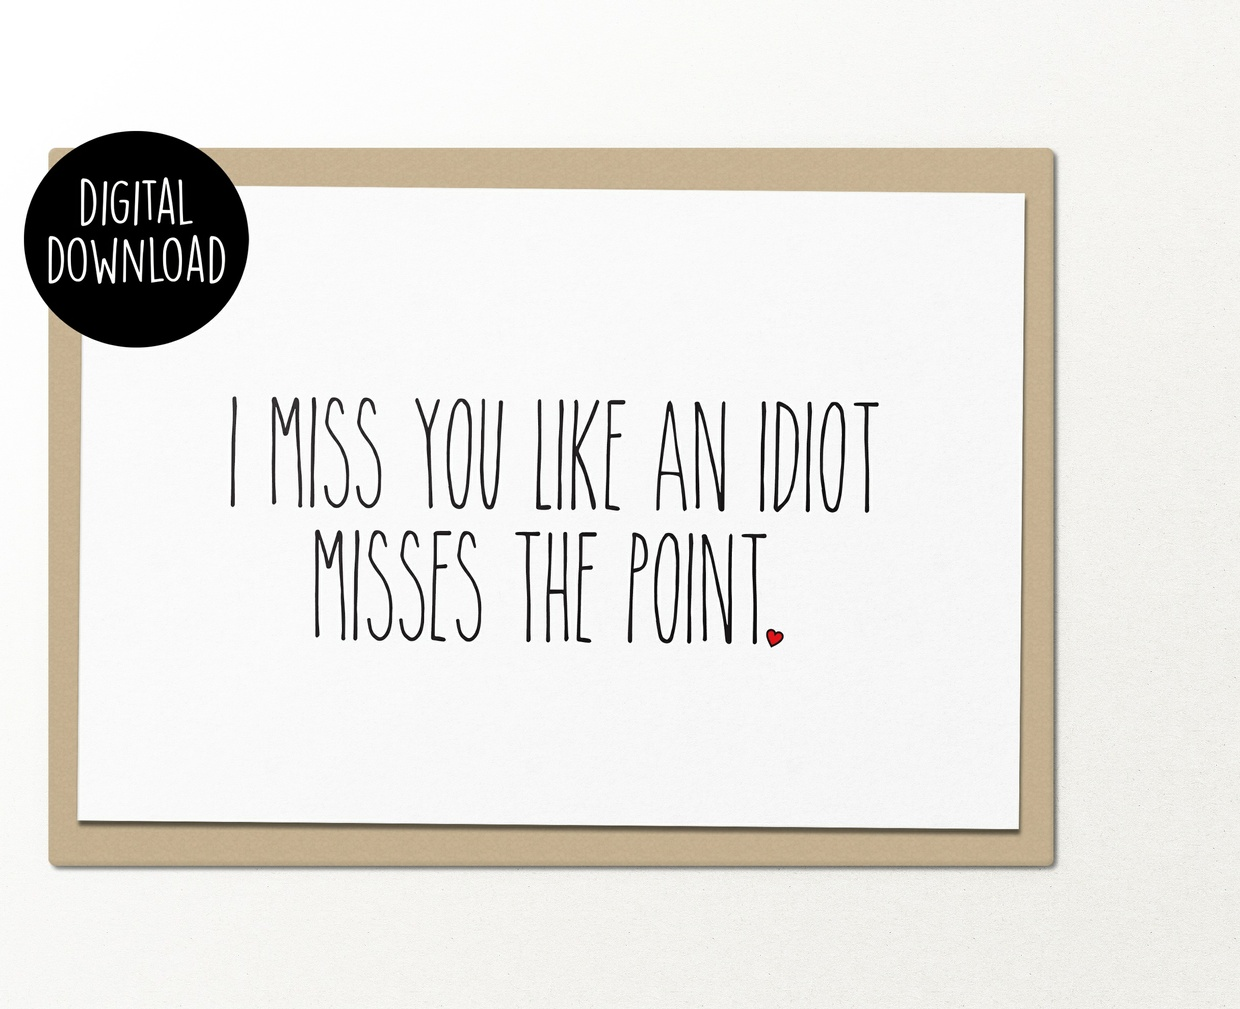 I miss you like an idiot misses the point printable greeting card